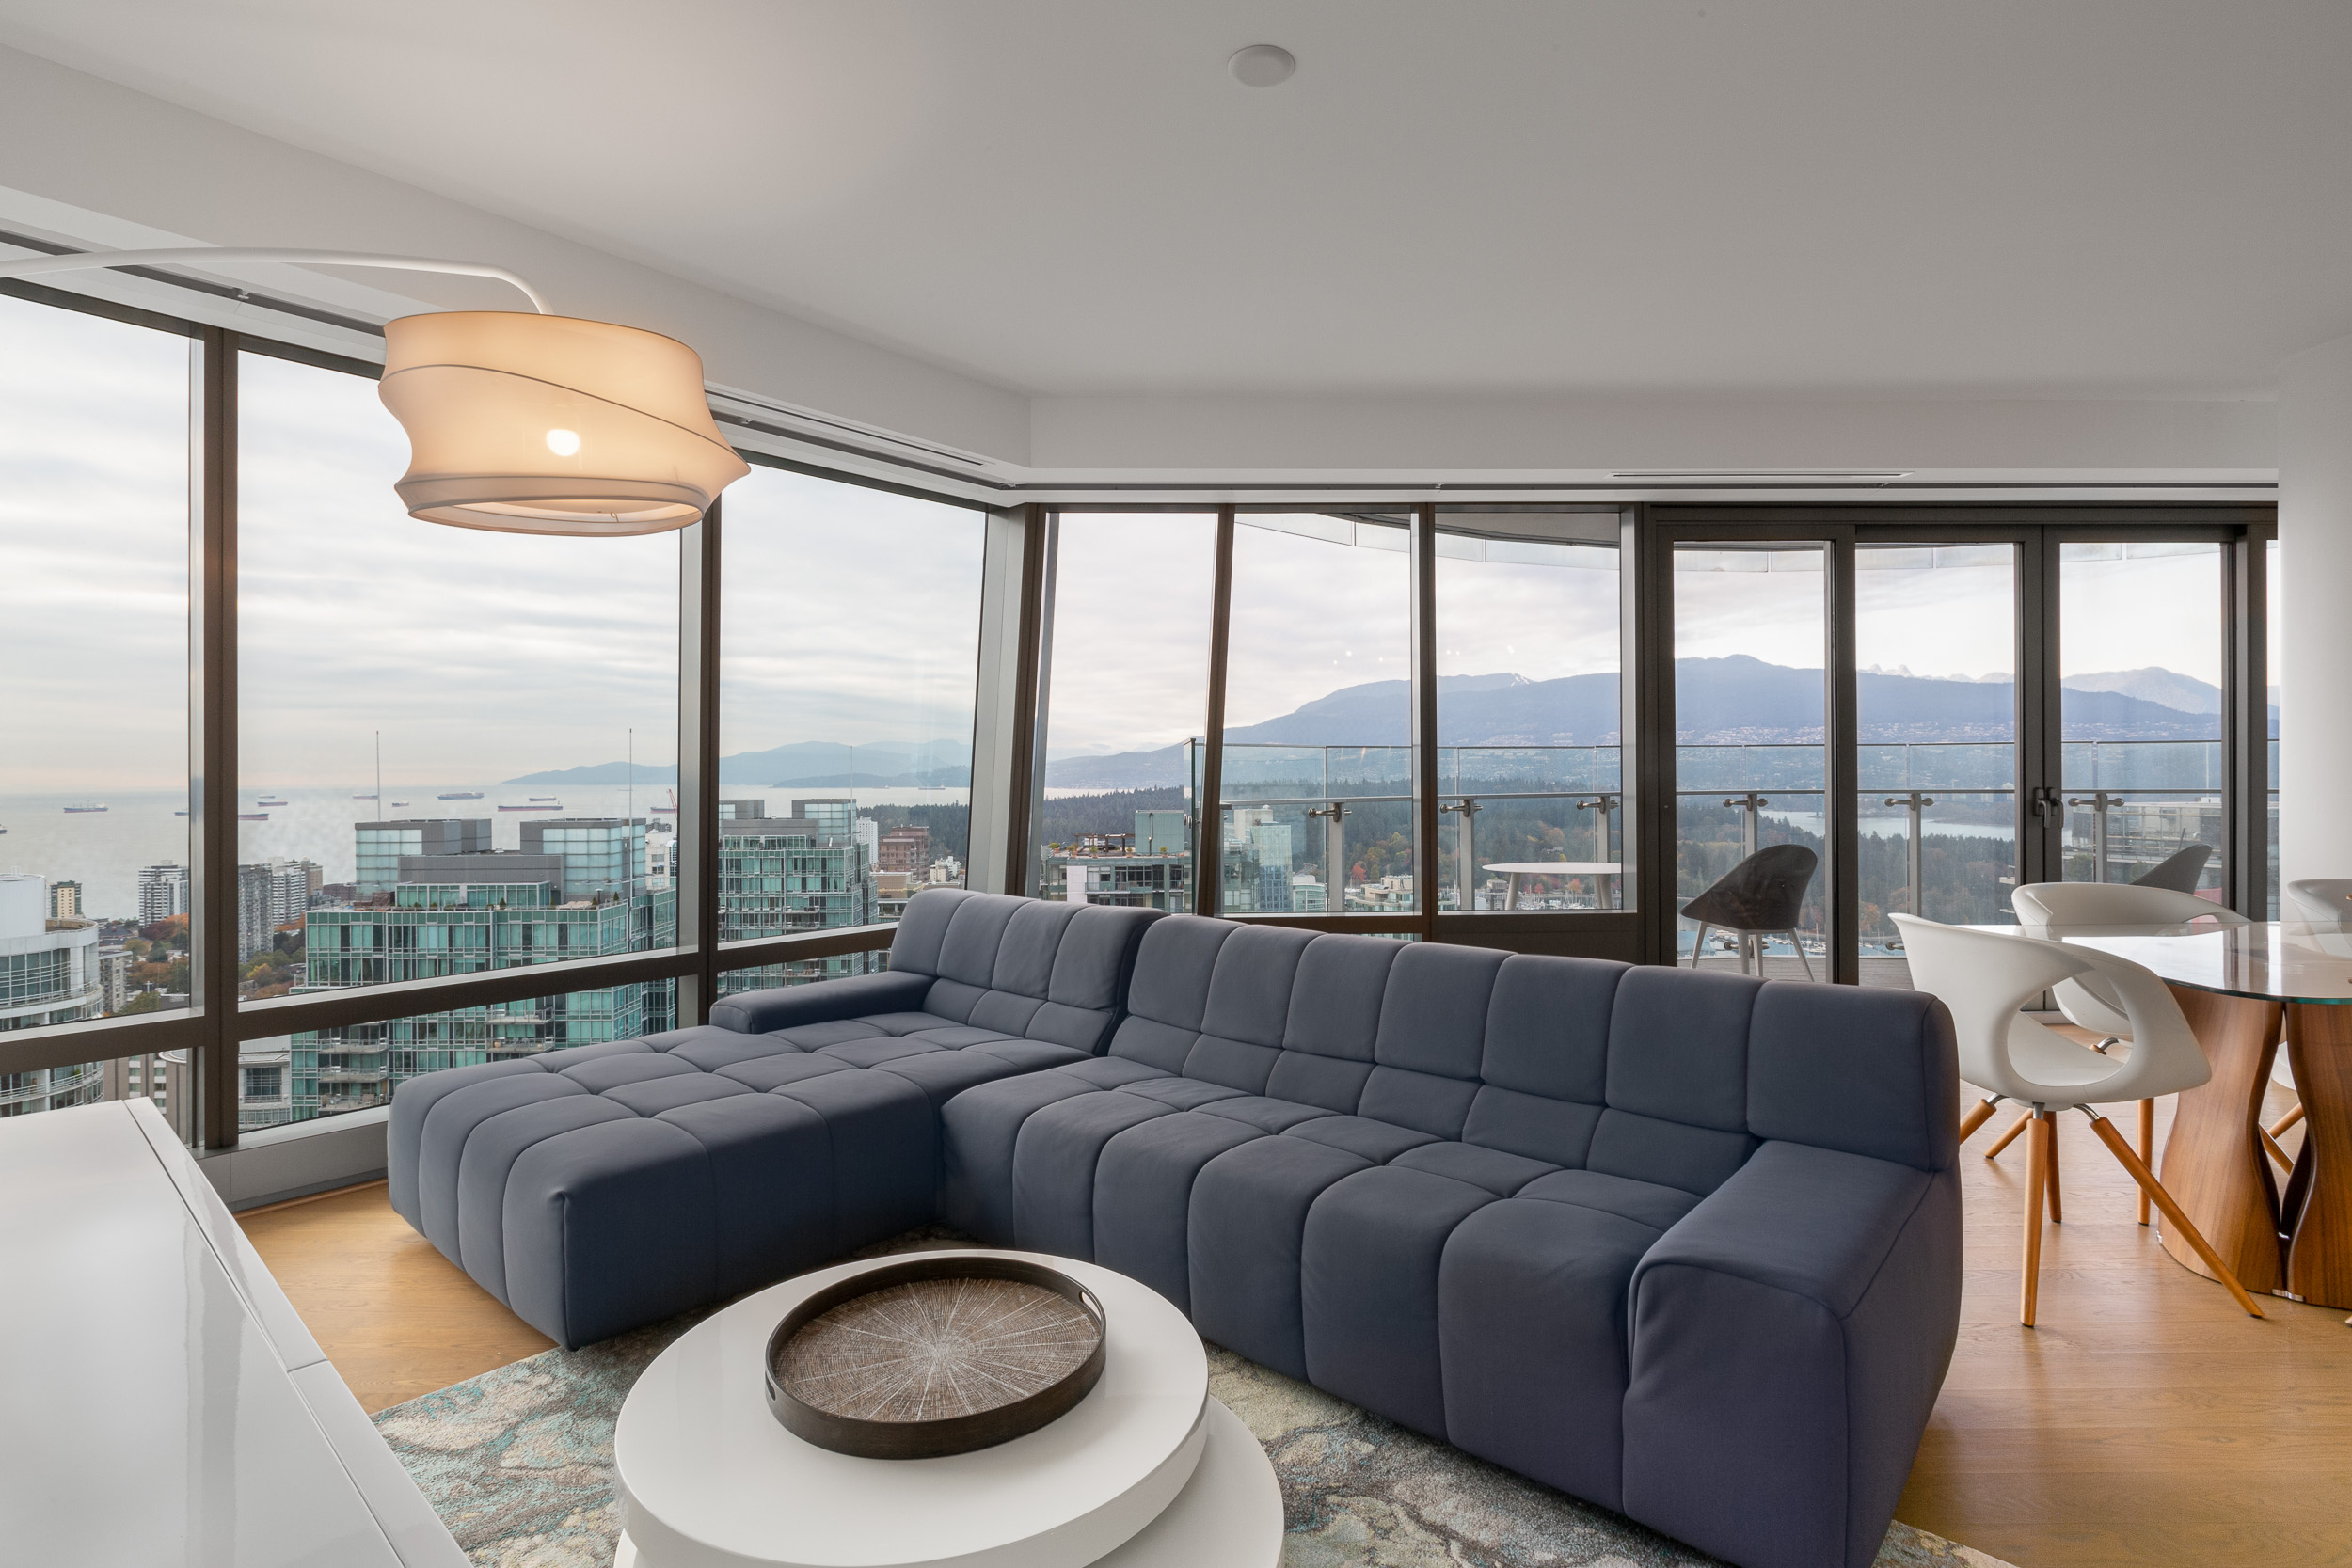 FURNISHED THREE BEDROOM VIEW PROPERTY IN THE LUXURIOUS TRUMP RESIDENCES VANCOUVER